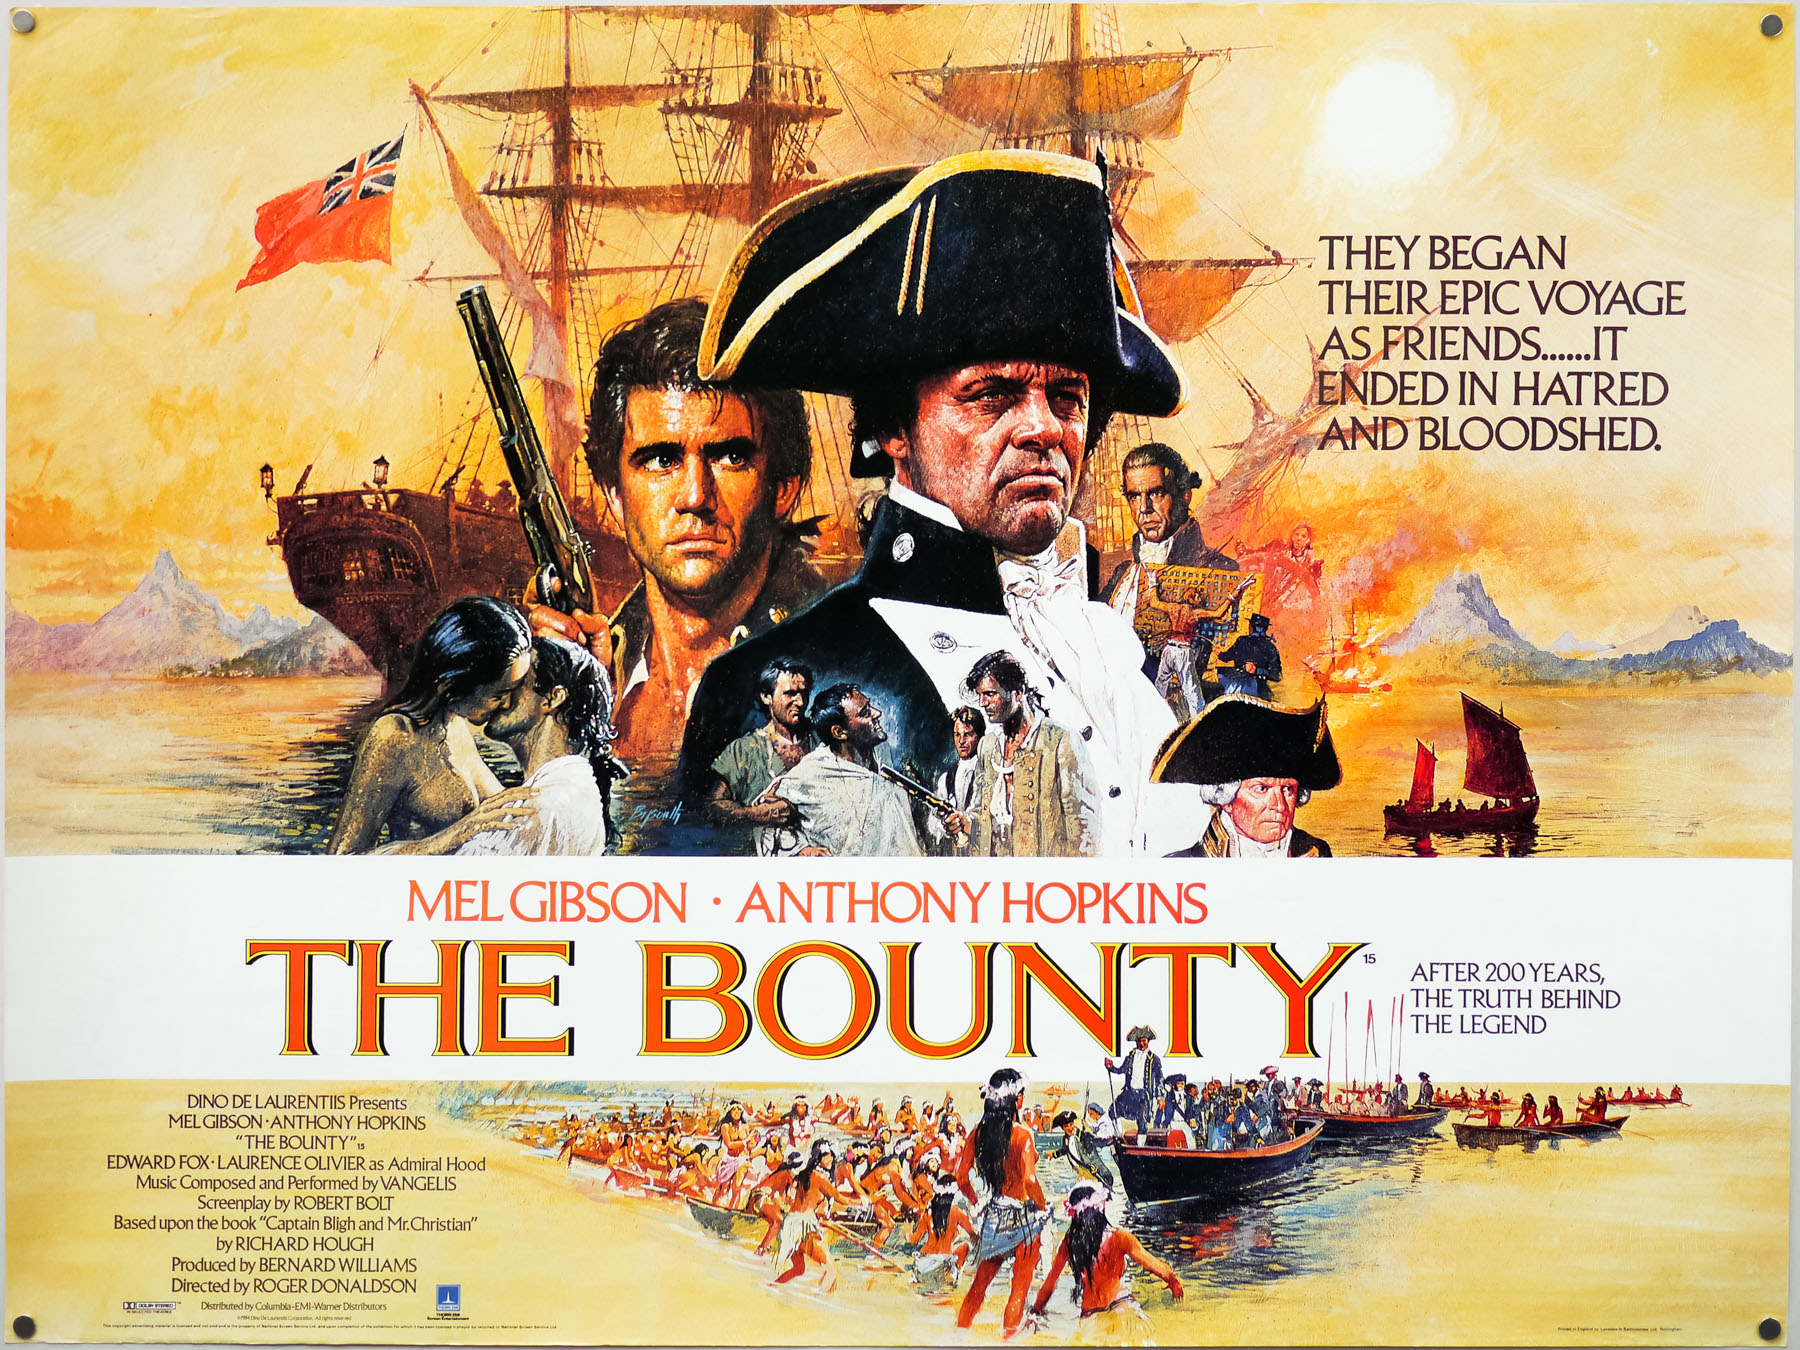 The UK quad for The Bounty, painted by Brian Bysouth, 1984